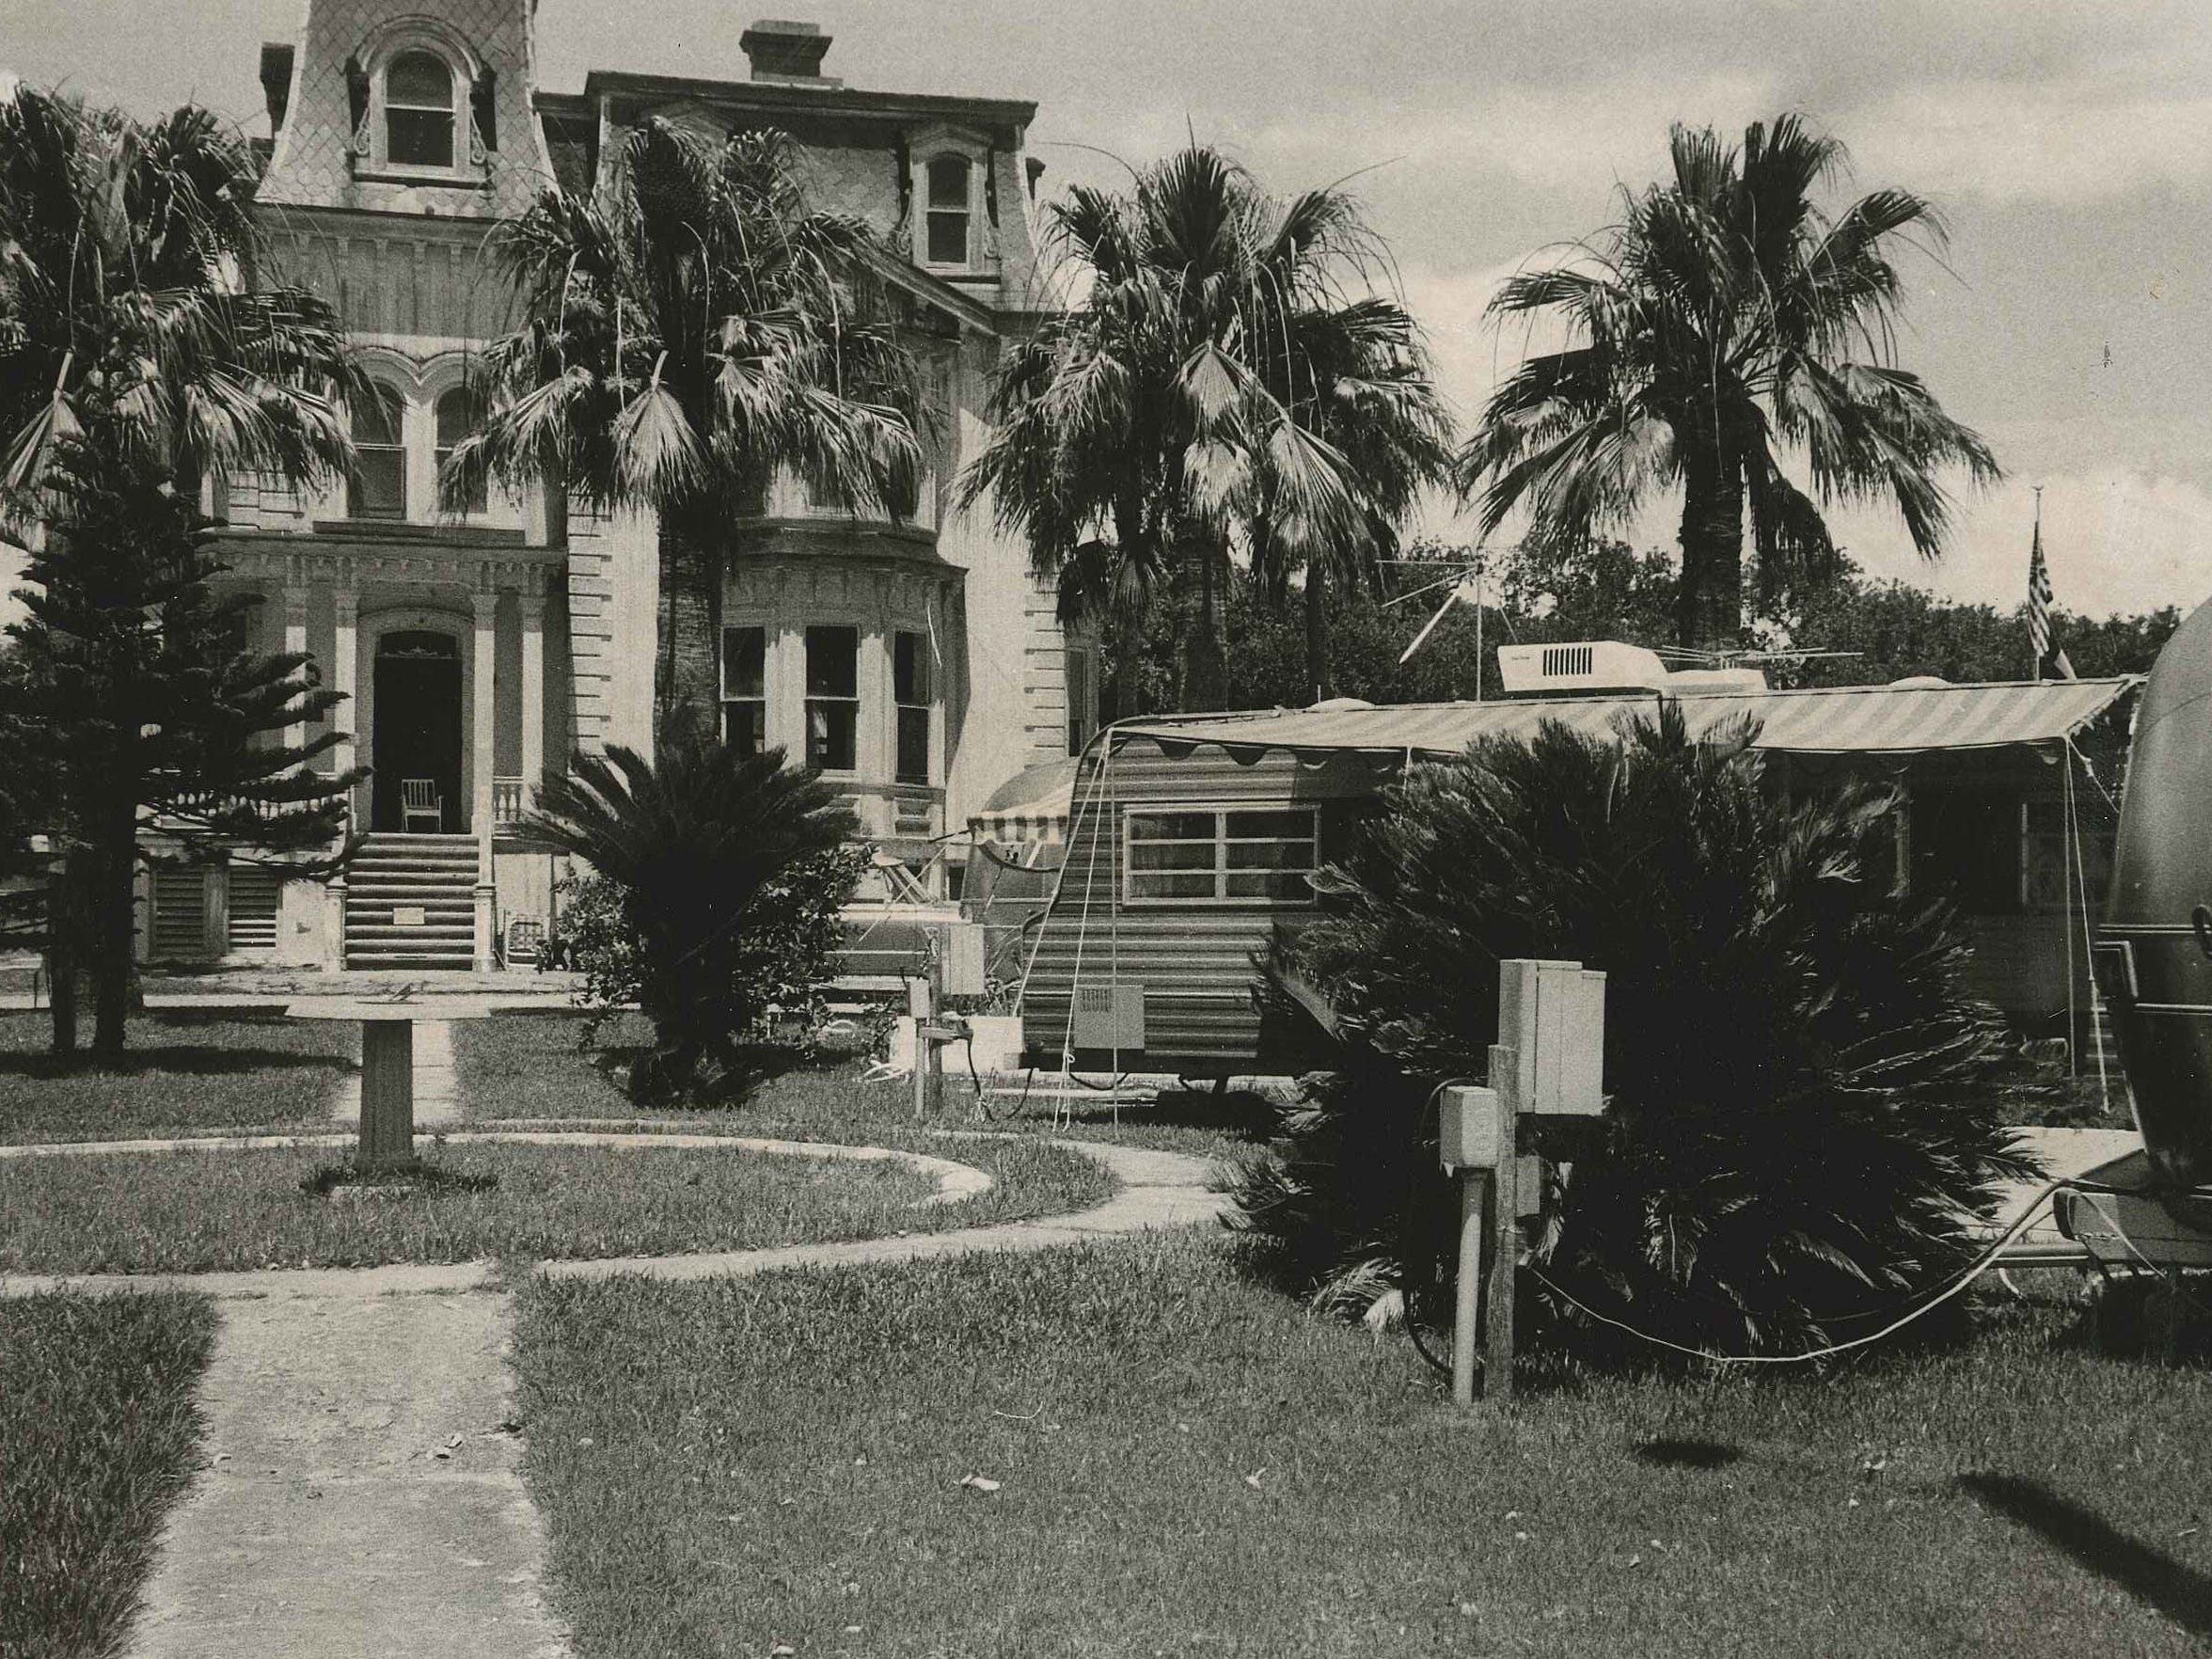 The Fulton Mansion serves as the backdrop to the Fulton Mansion Trailer Park in July 1973, which operated on the grounds in the 1960s through mid-1970s. The mansion was purchased by the Texas Parks and Wildlife Dept. in 1976 and opened as a historical site in 1983.